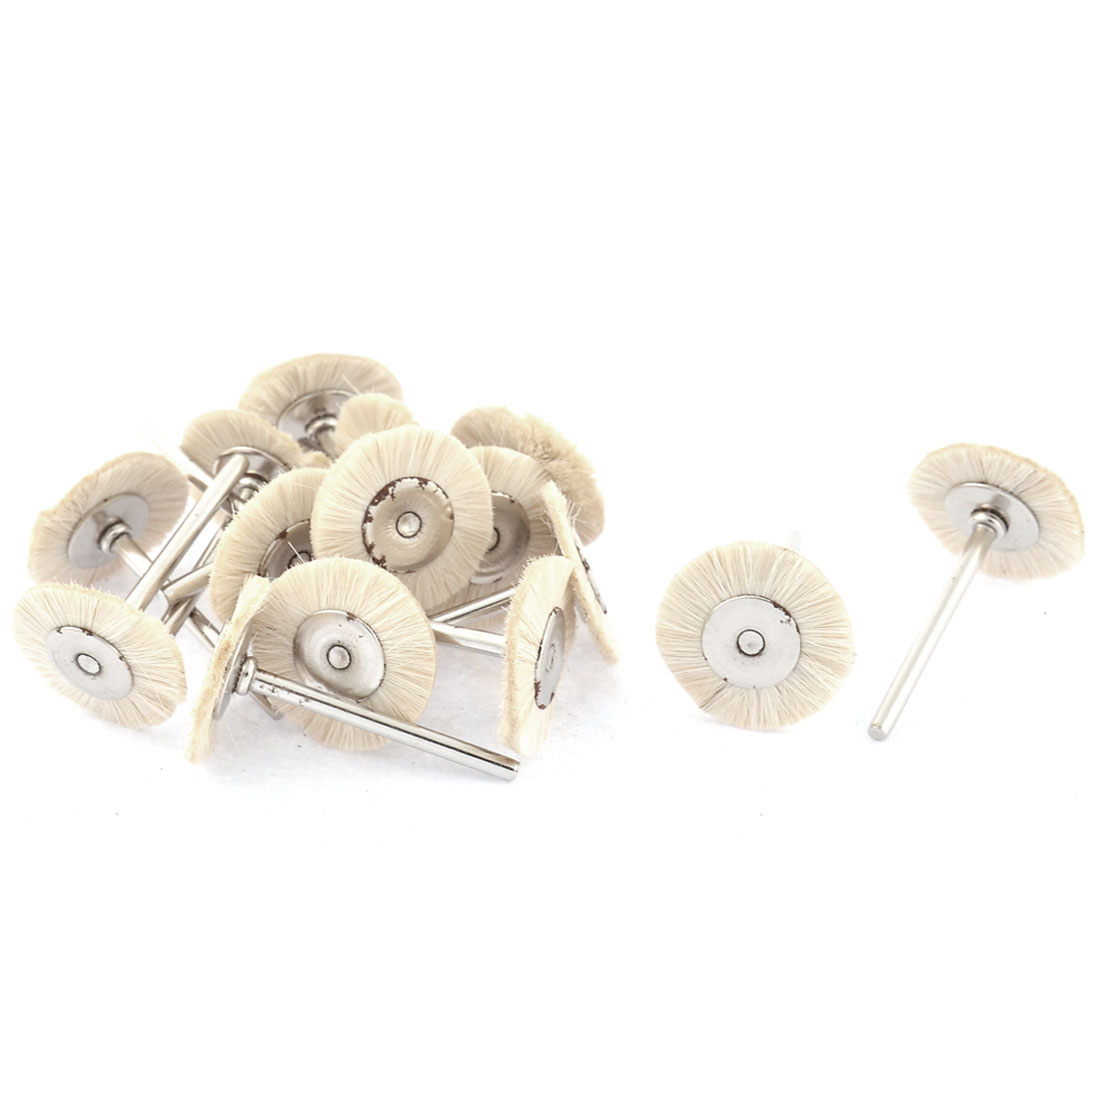 25mm Dia Head 3mm Shank Grinding Polishing Mounted Wheel White 15pcs